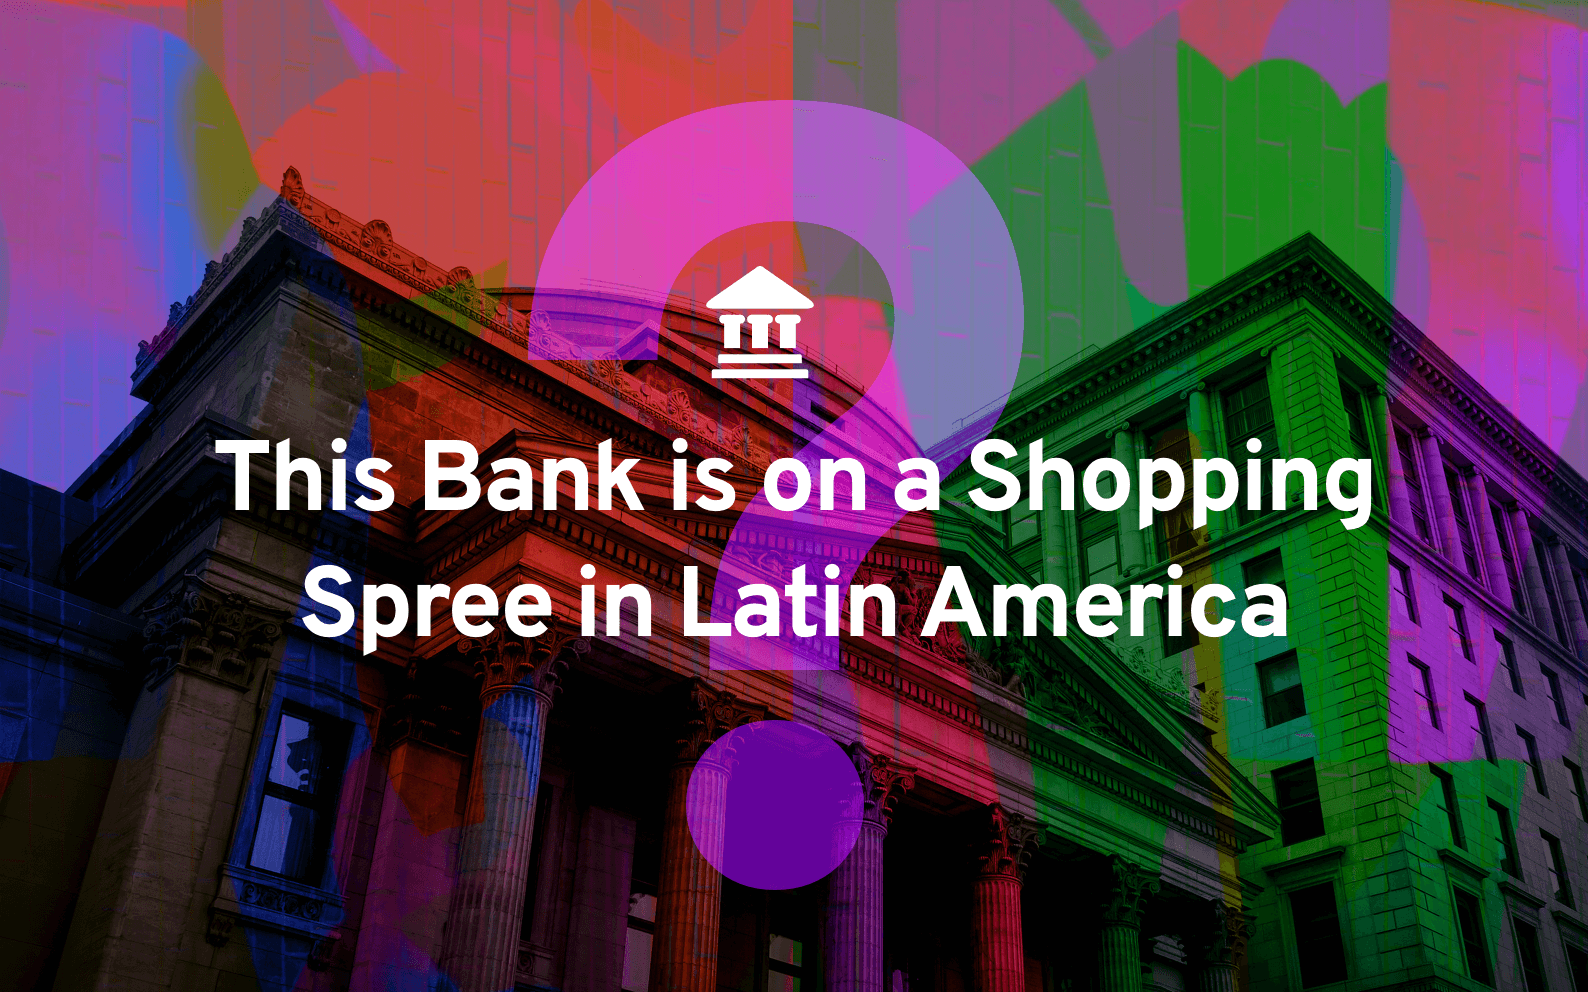 This Bank is on a Shopping Spree in Latin America (It's a Canadian Bank)